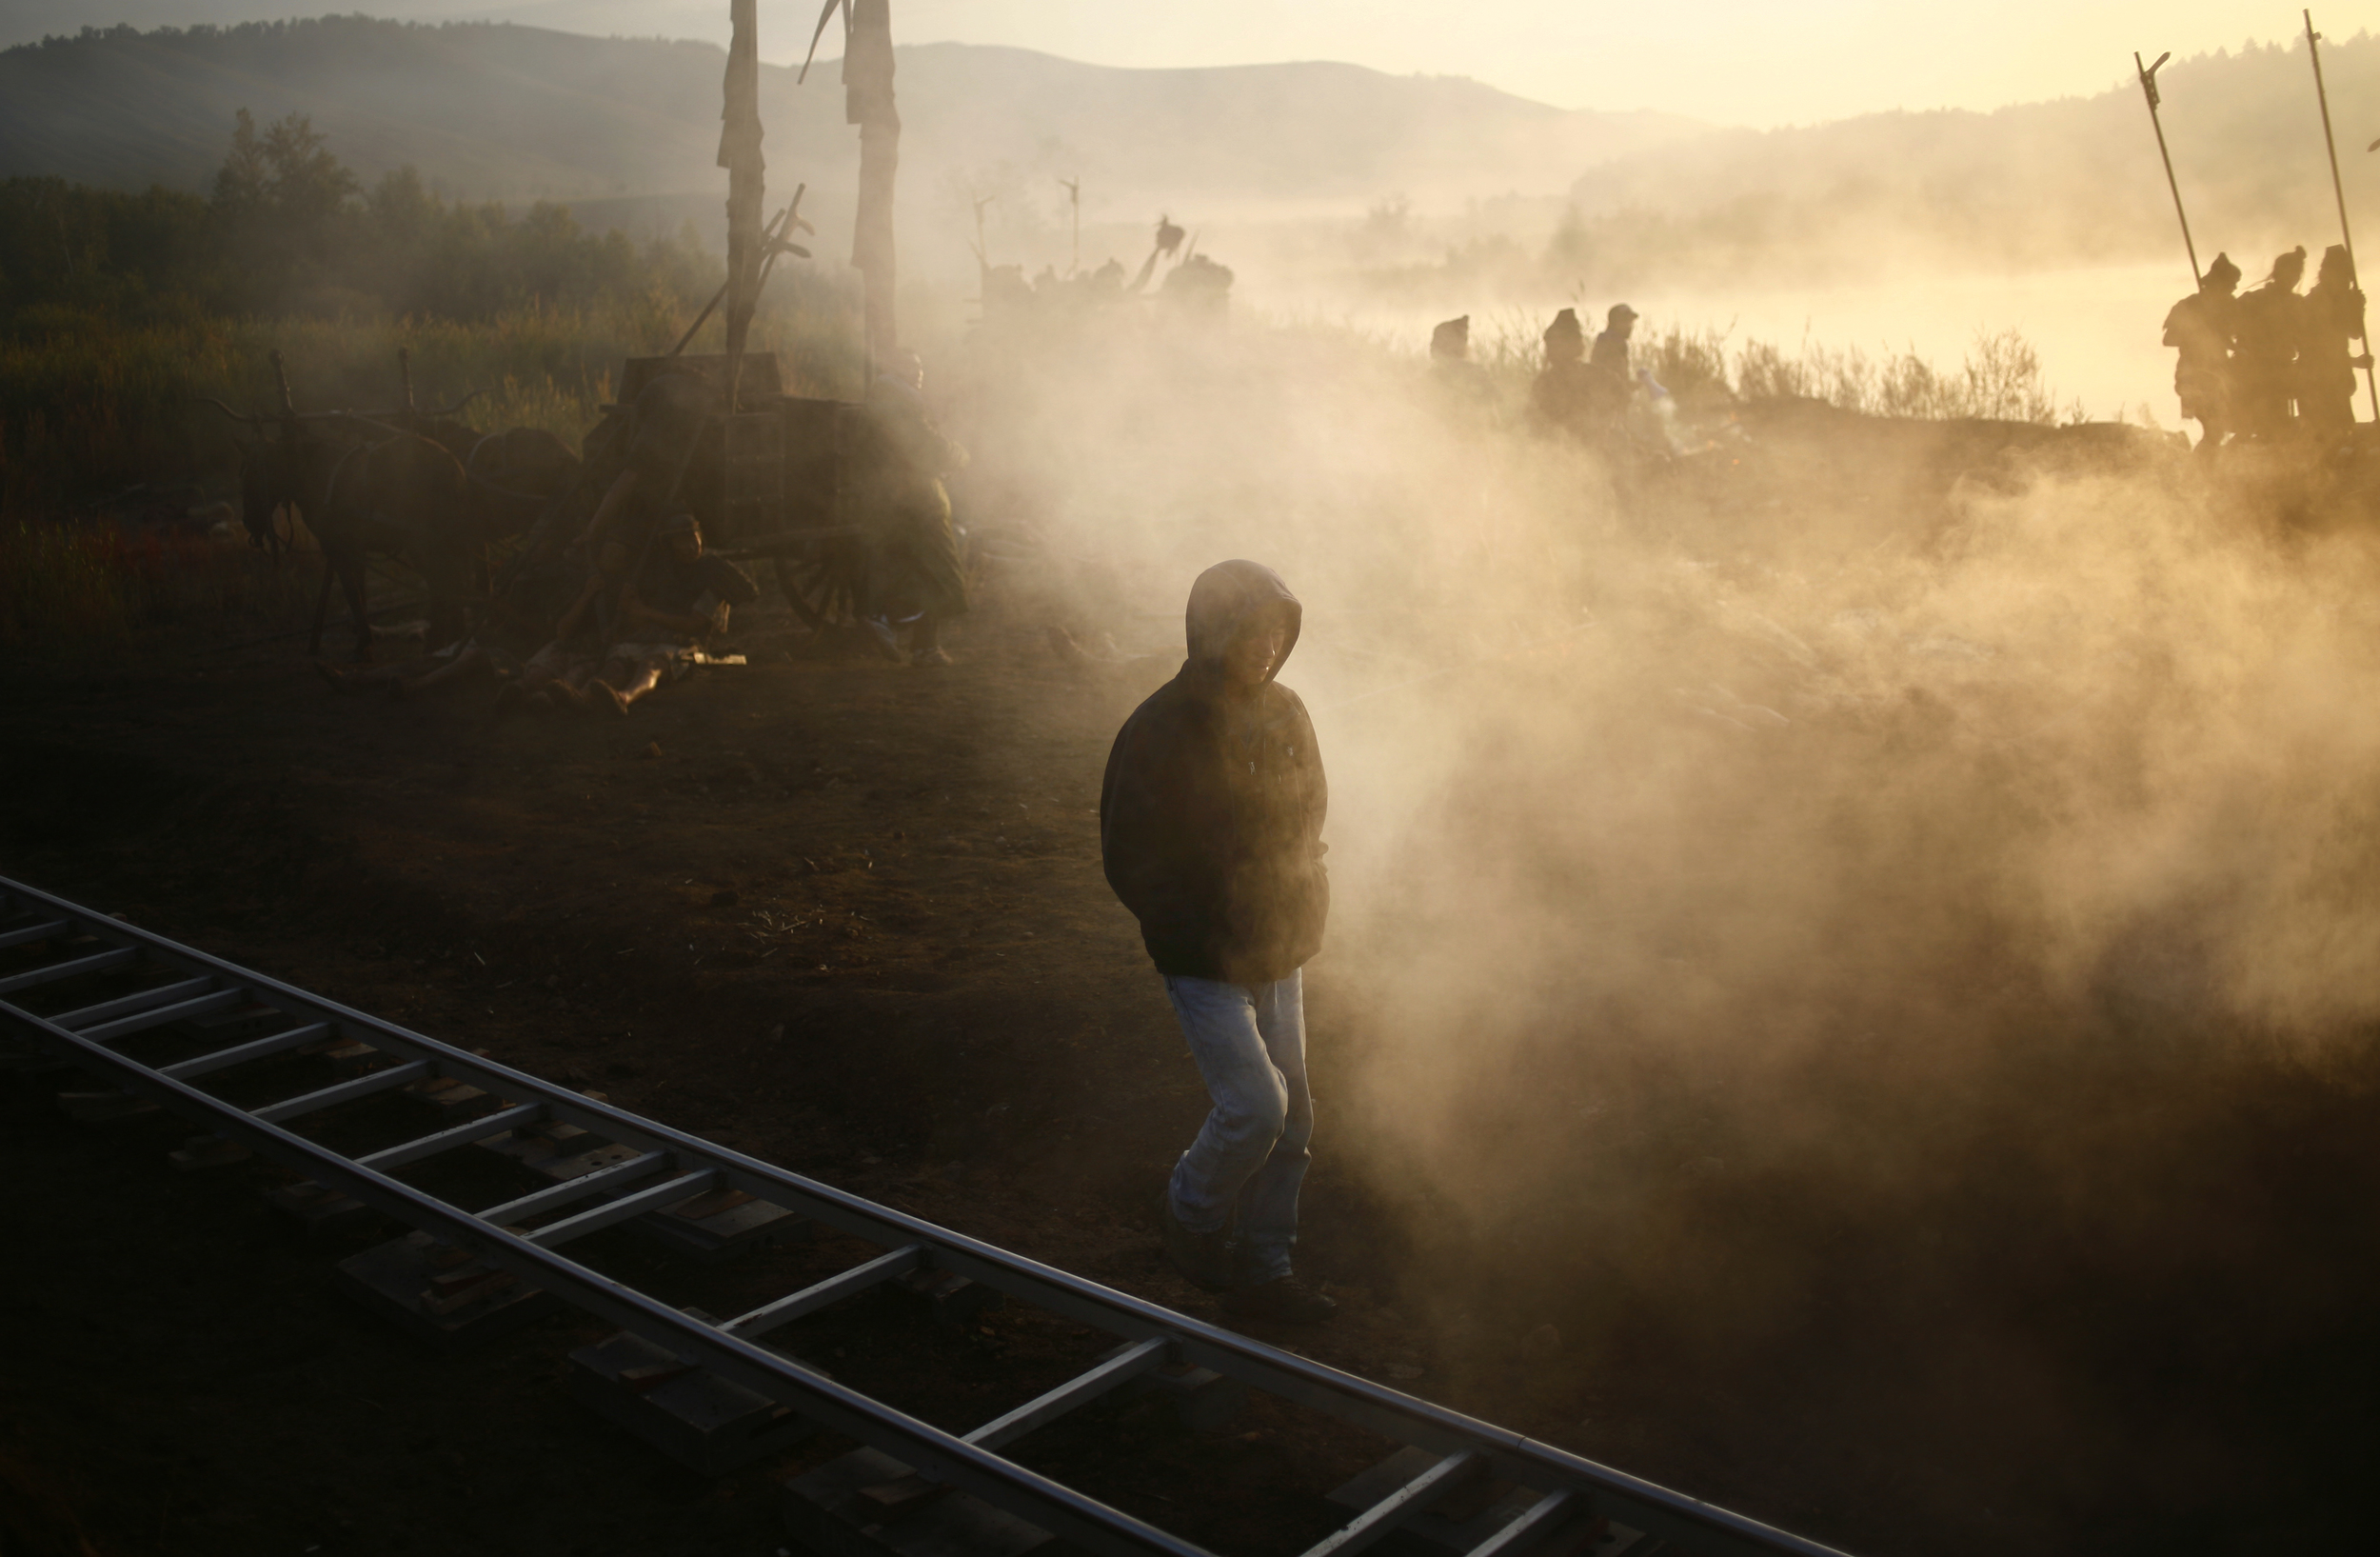 ​A crew member of a Chinese movie set walks down an on-location set in the early morning.